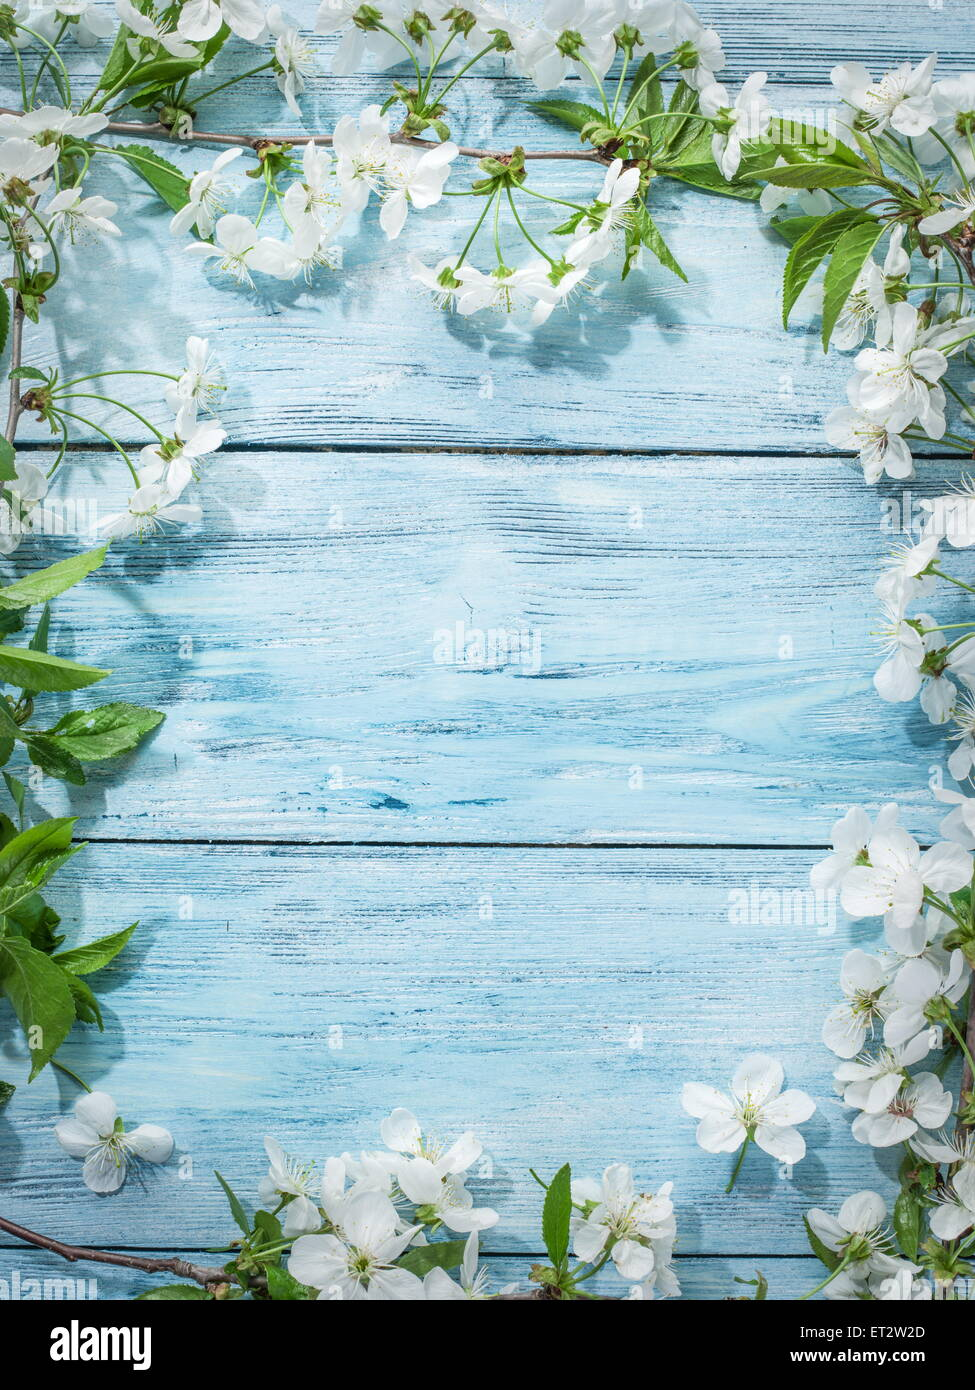 Blooming cherry twig over old wooden table. - Stock Image